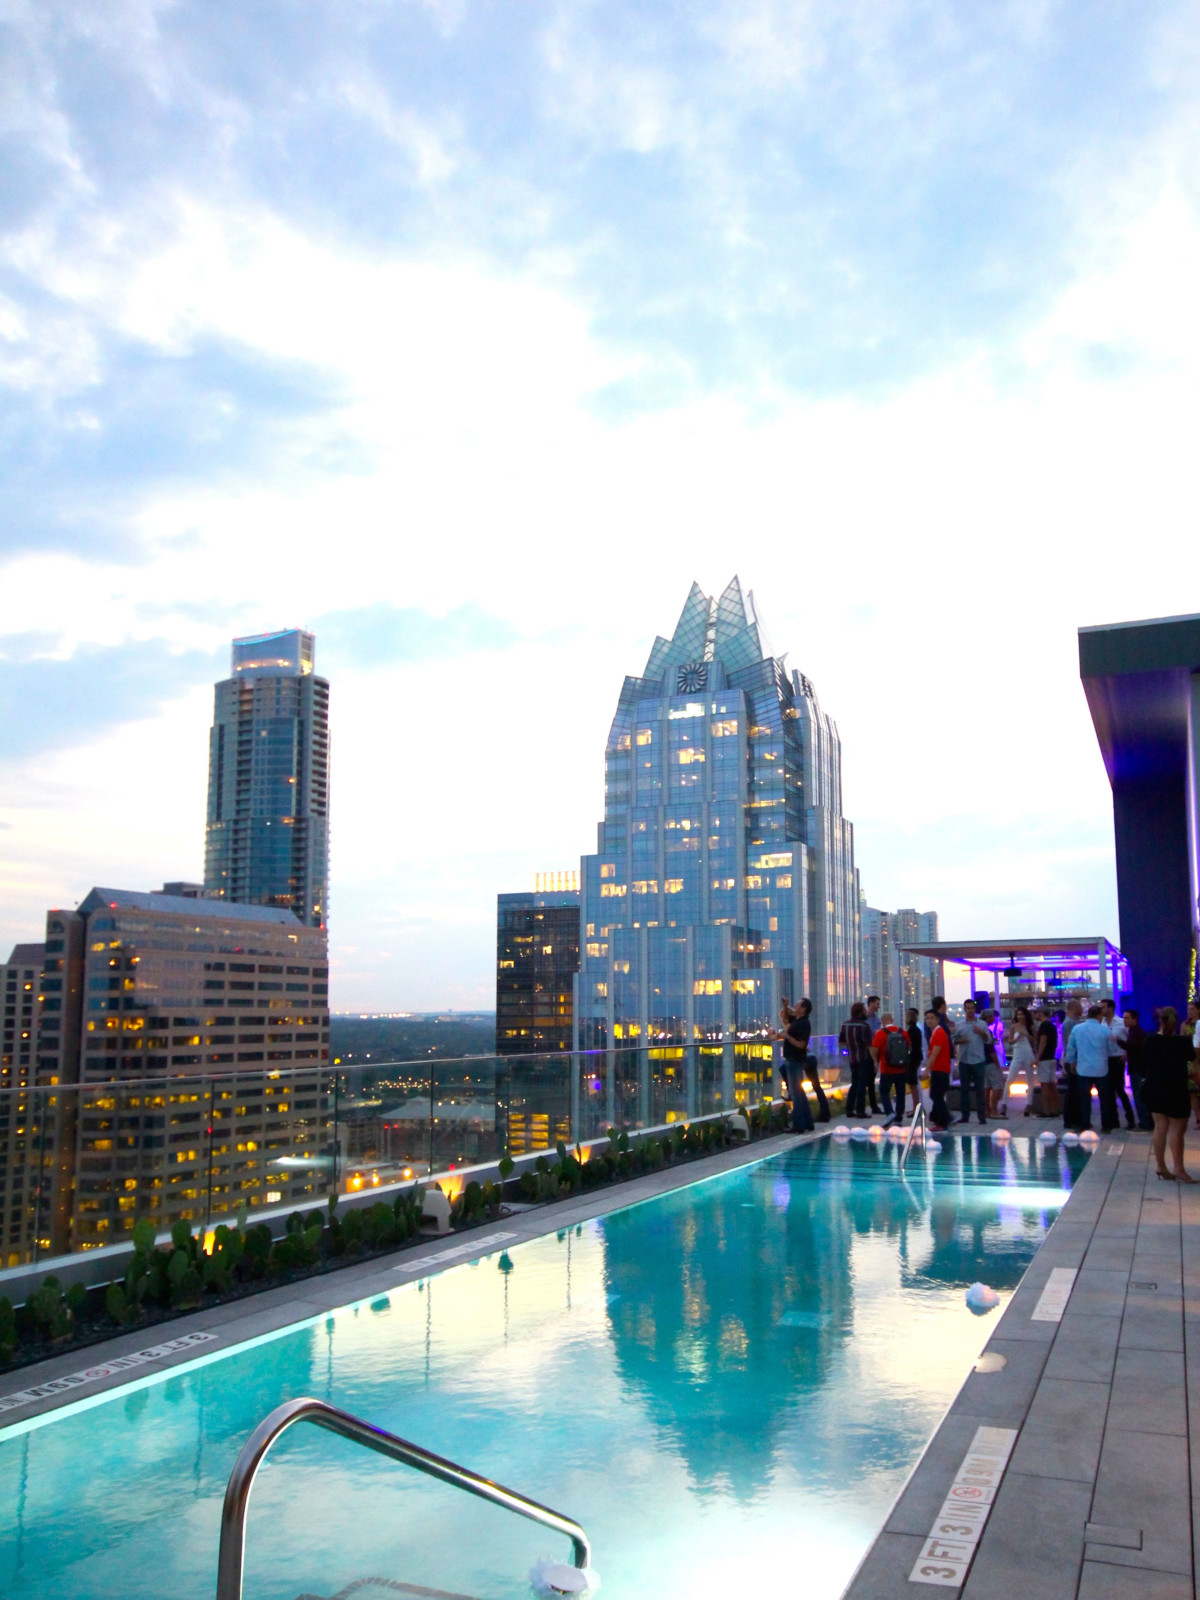 12 iconic views that will make you fall in love with Austin